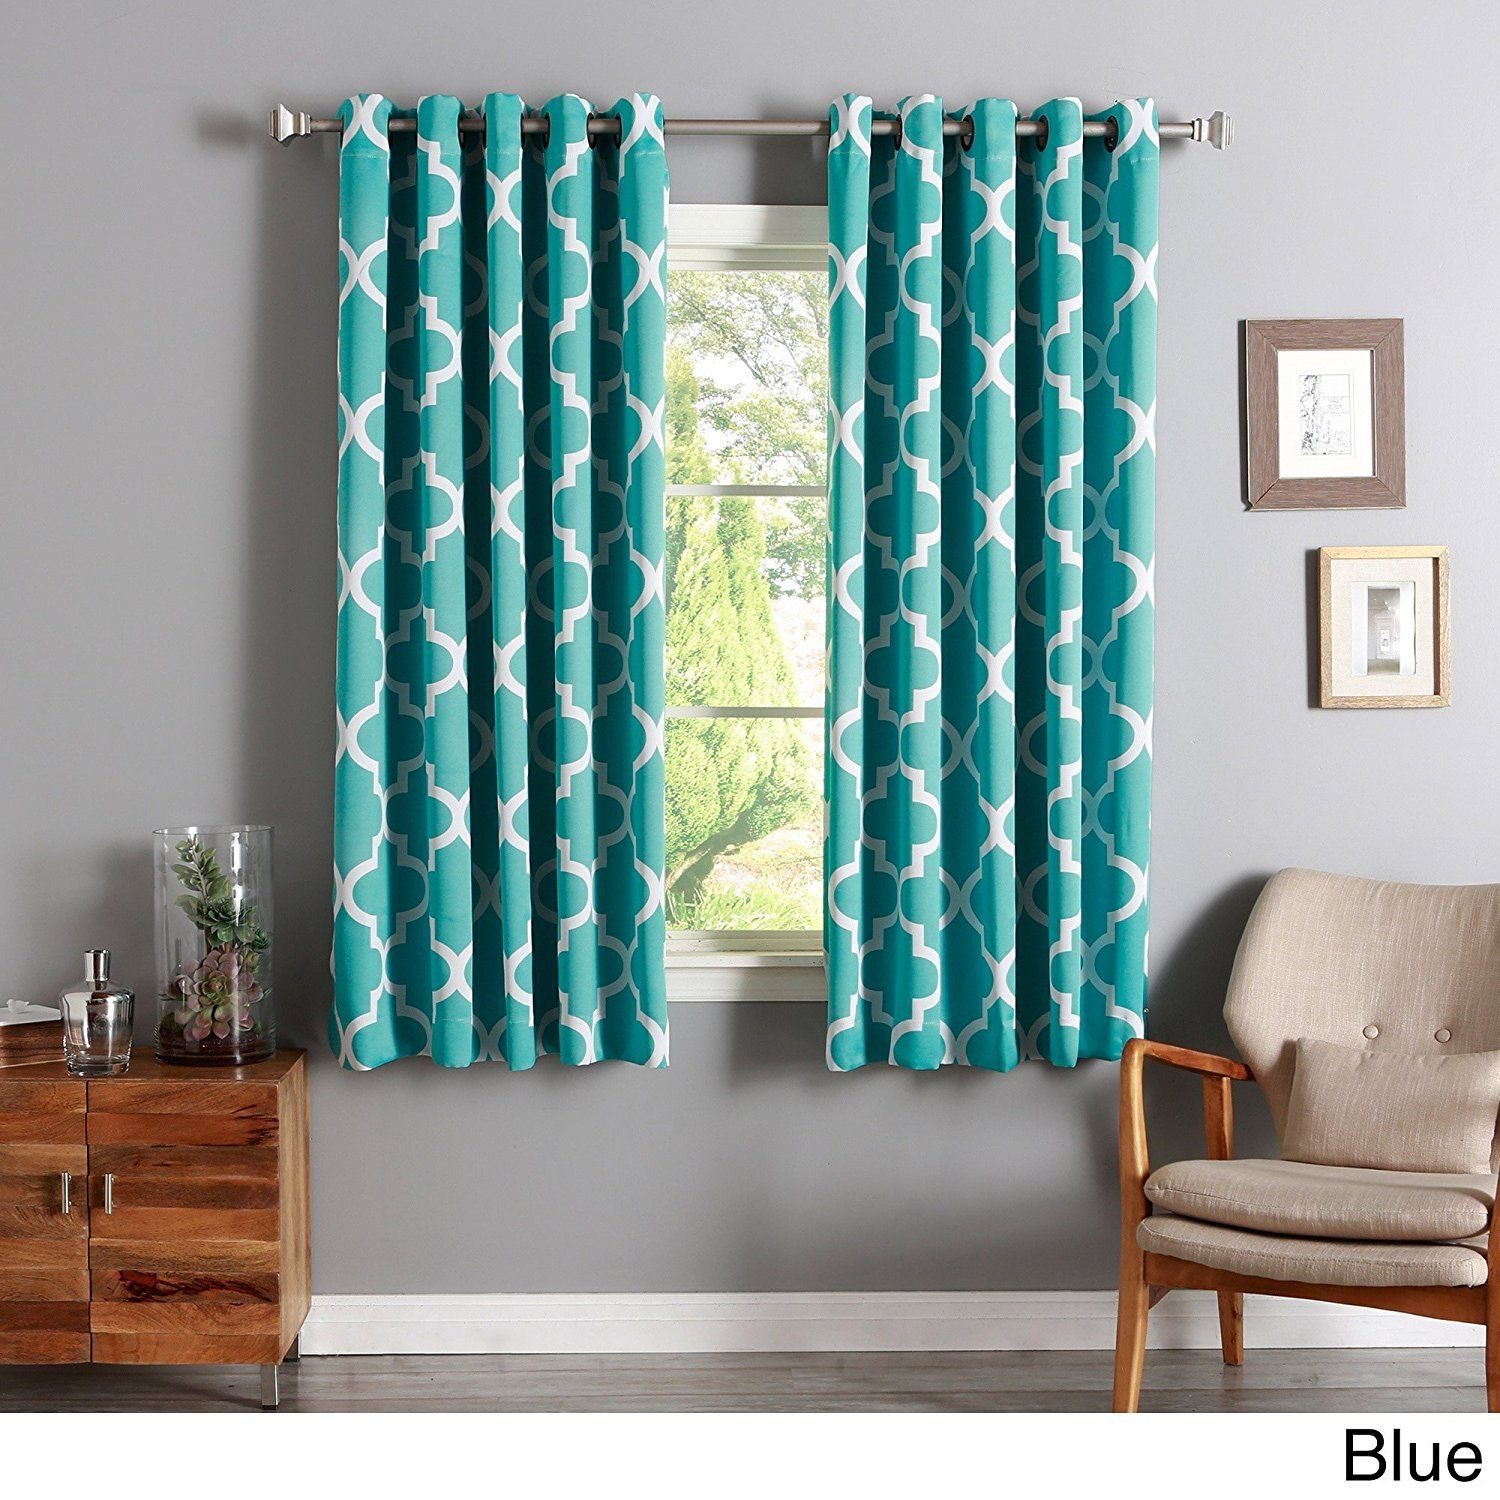 fancy guide lace curtain curtains windows of ideas dollclique source hanging unique living com inch inches luxury for swag valances